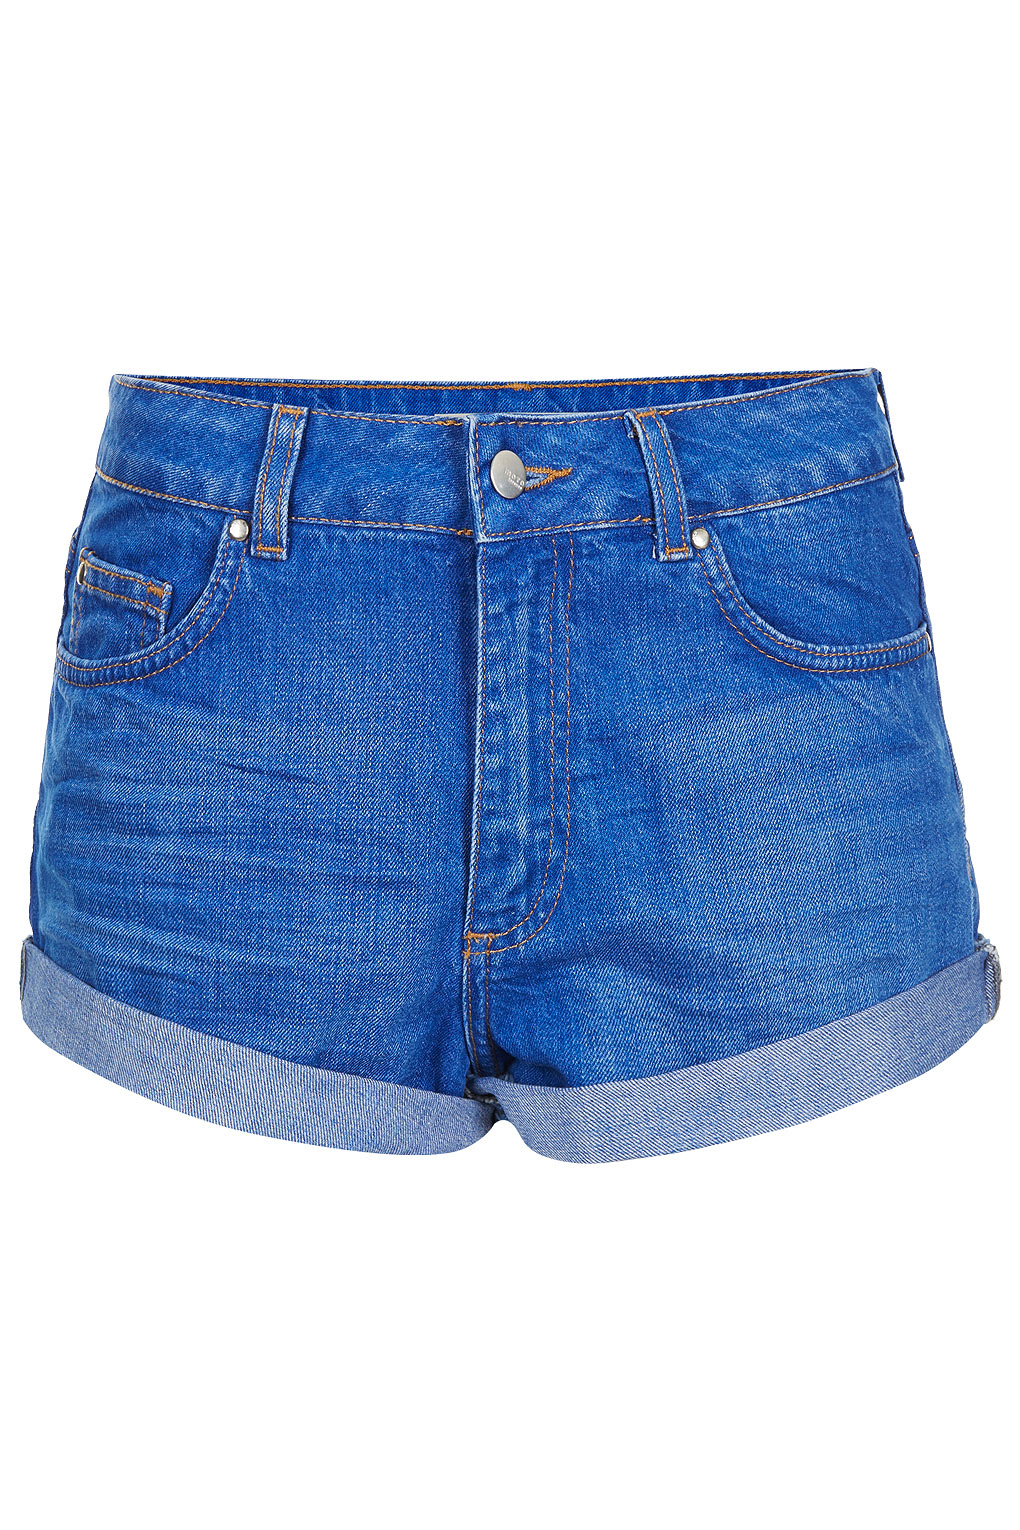 Topshop High Waisted Denim Shorts in Blue | Lyst